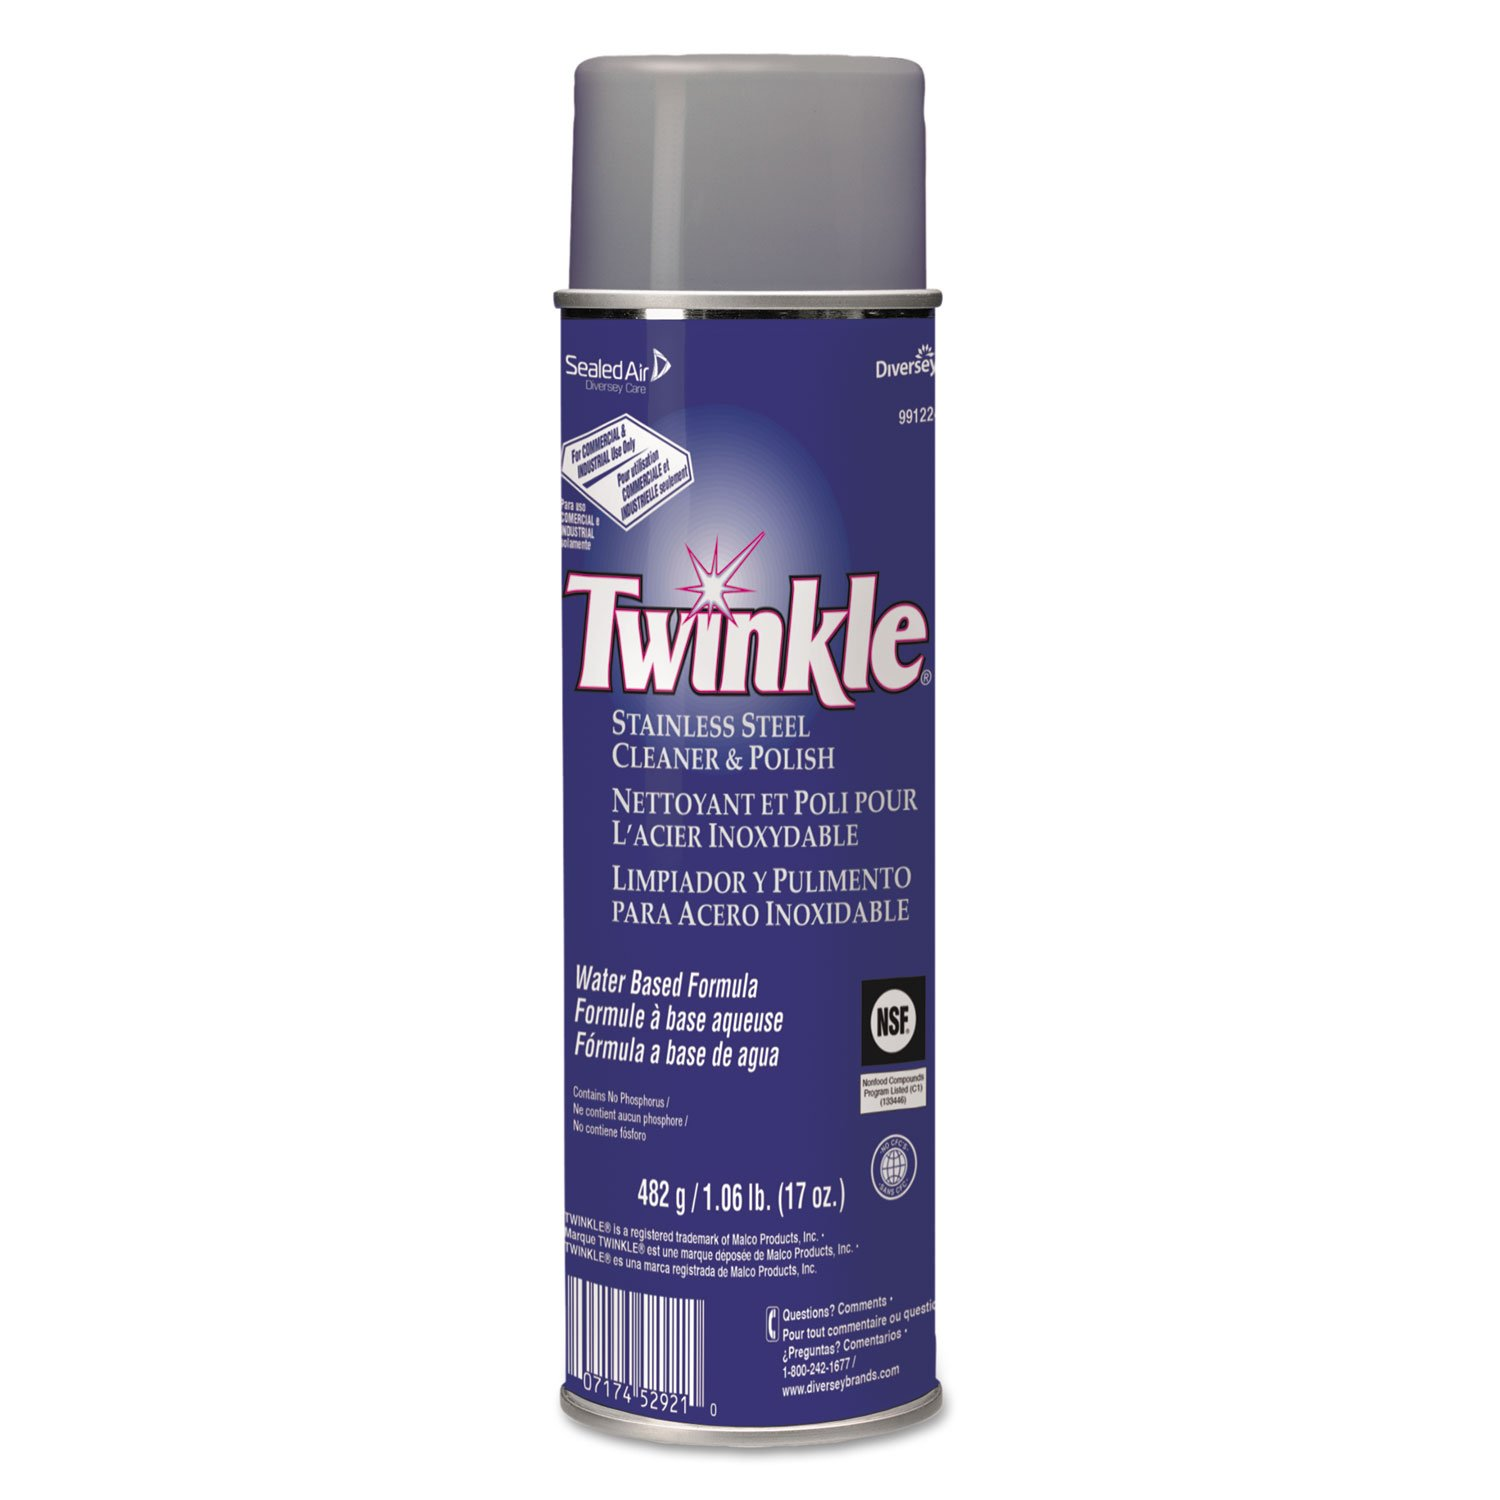 Twinkle Stainless Steel Cleaner & Polish, 17 Oz by Twinkle Products